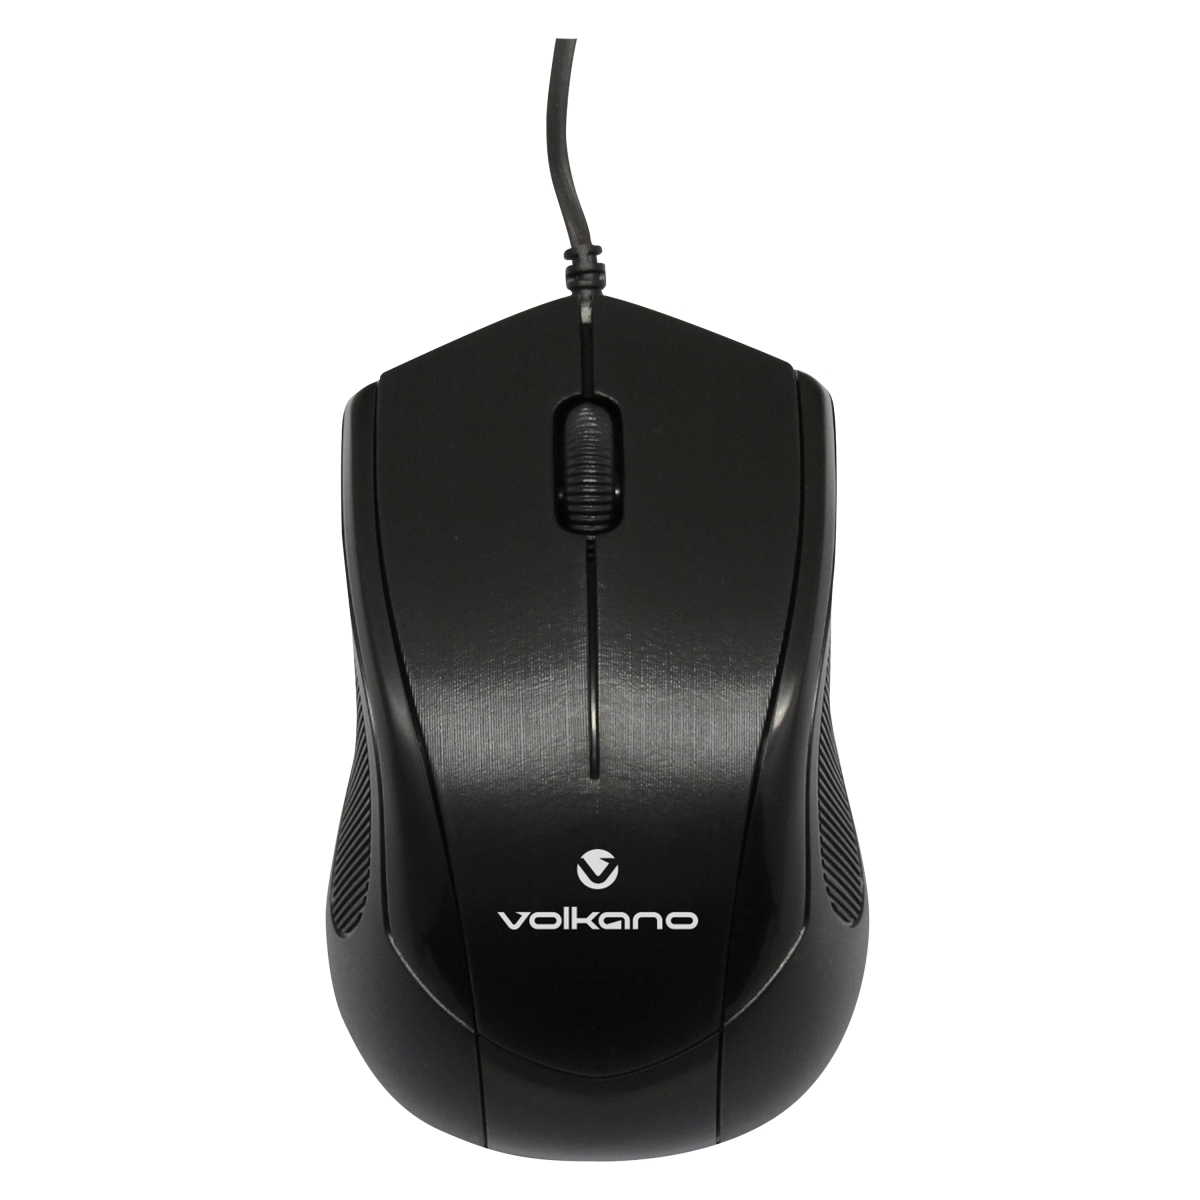 Volkano Mineral Series Mouse & Keyboard